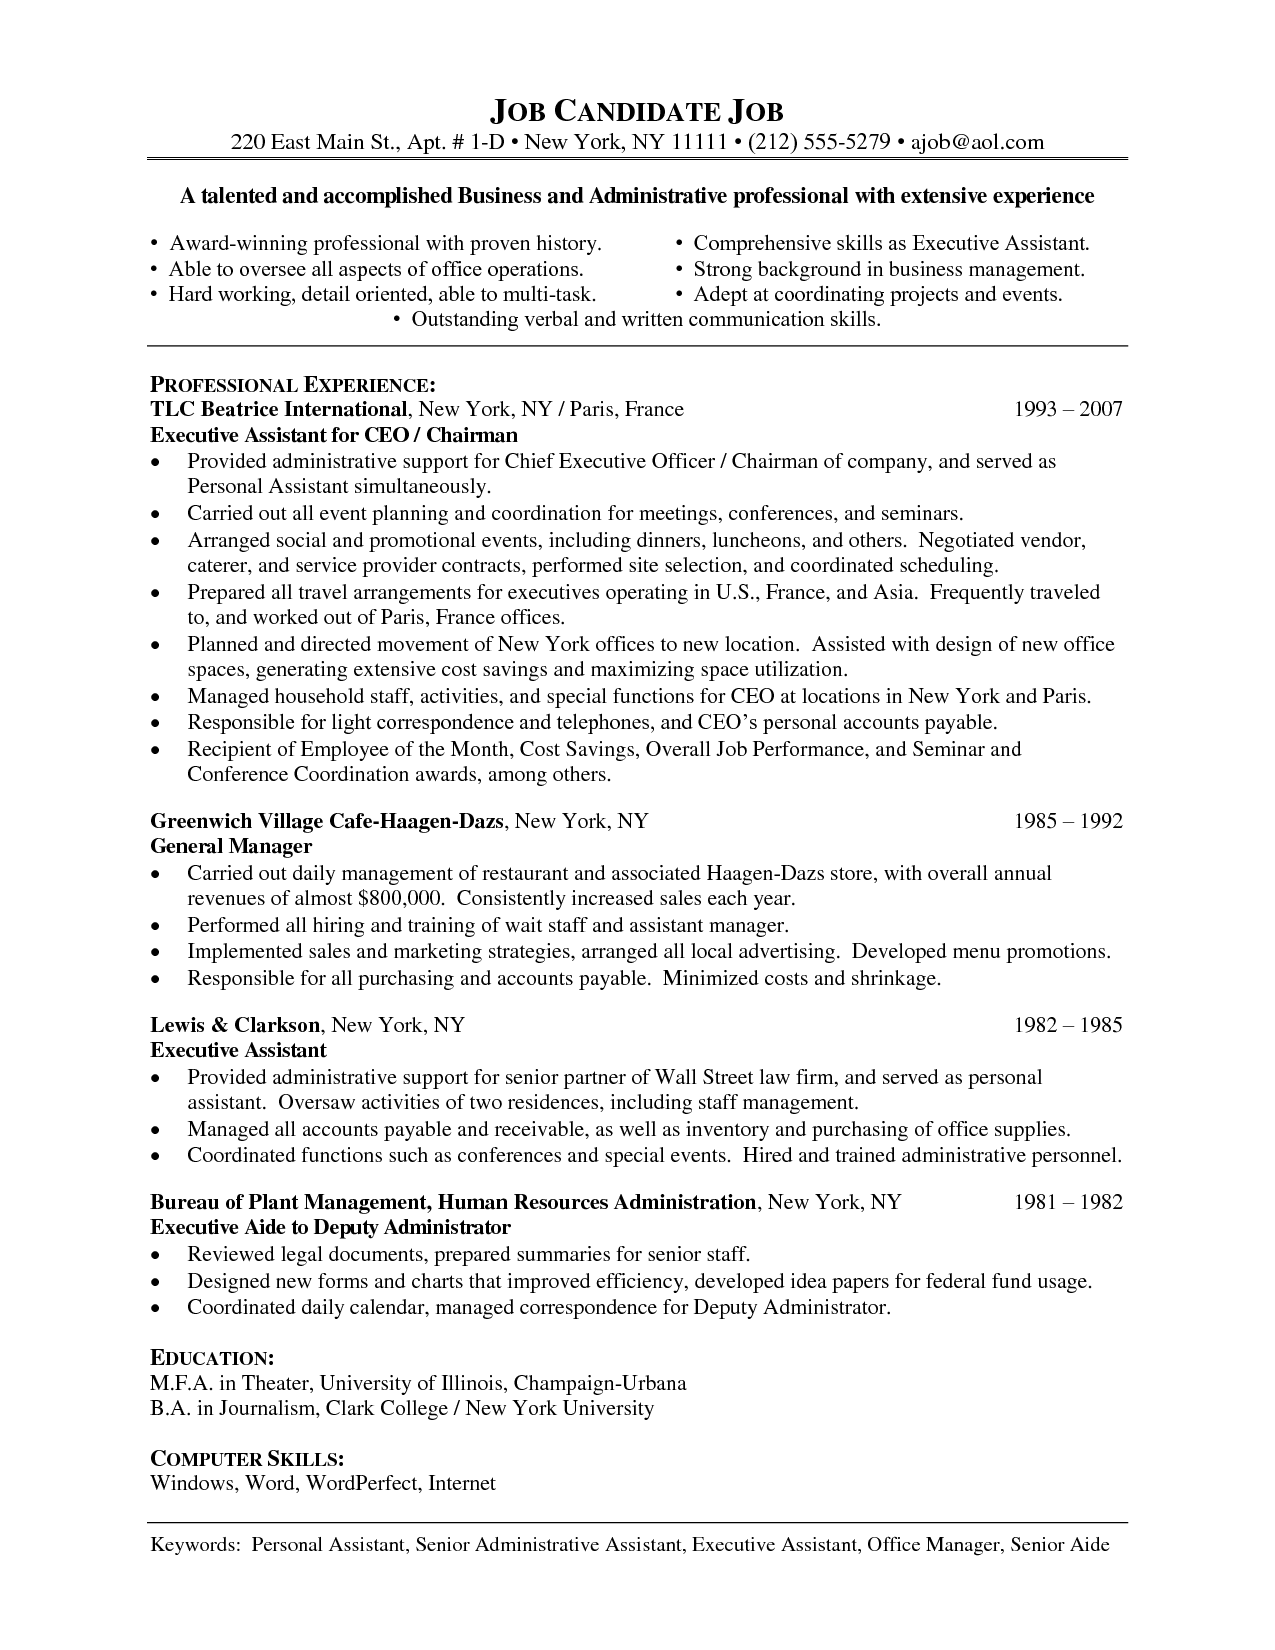 Administrative Functional Resume   Google Search  Resume For Administrative Position